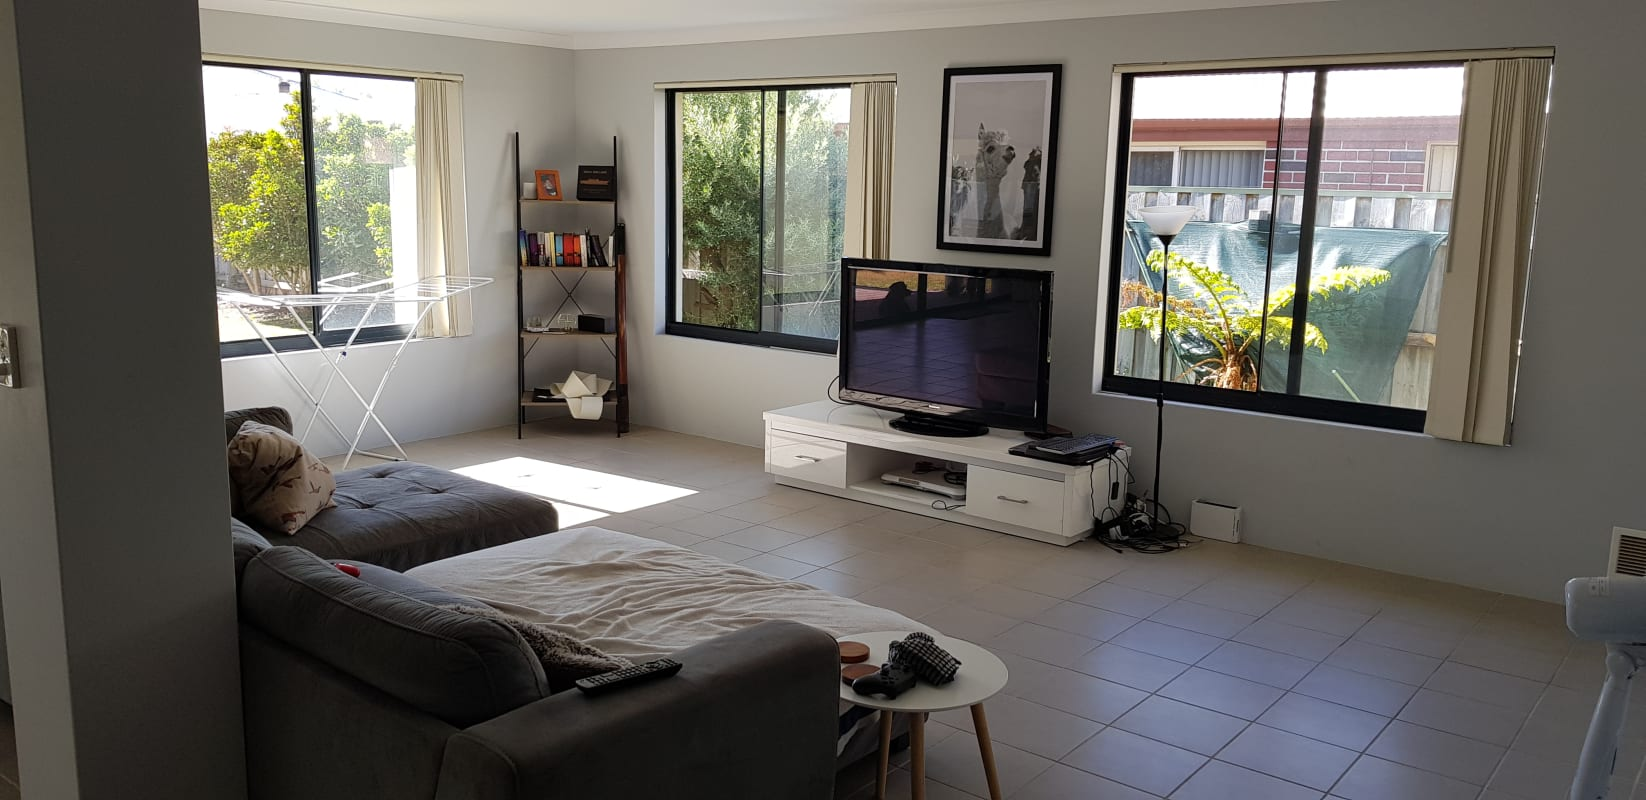 $160, Share-house, 3 rooms, Ritchie Drive, Rockingham WA 6168, Ritchie Drive, Rockingham WA 6168